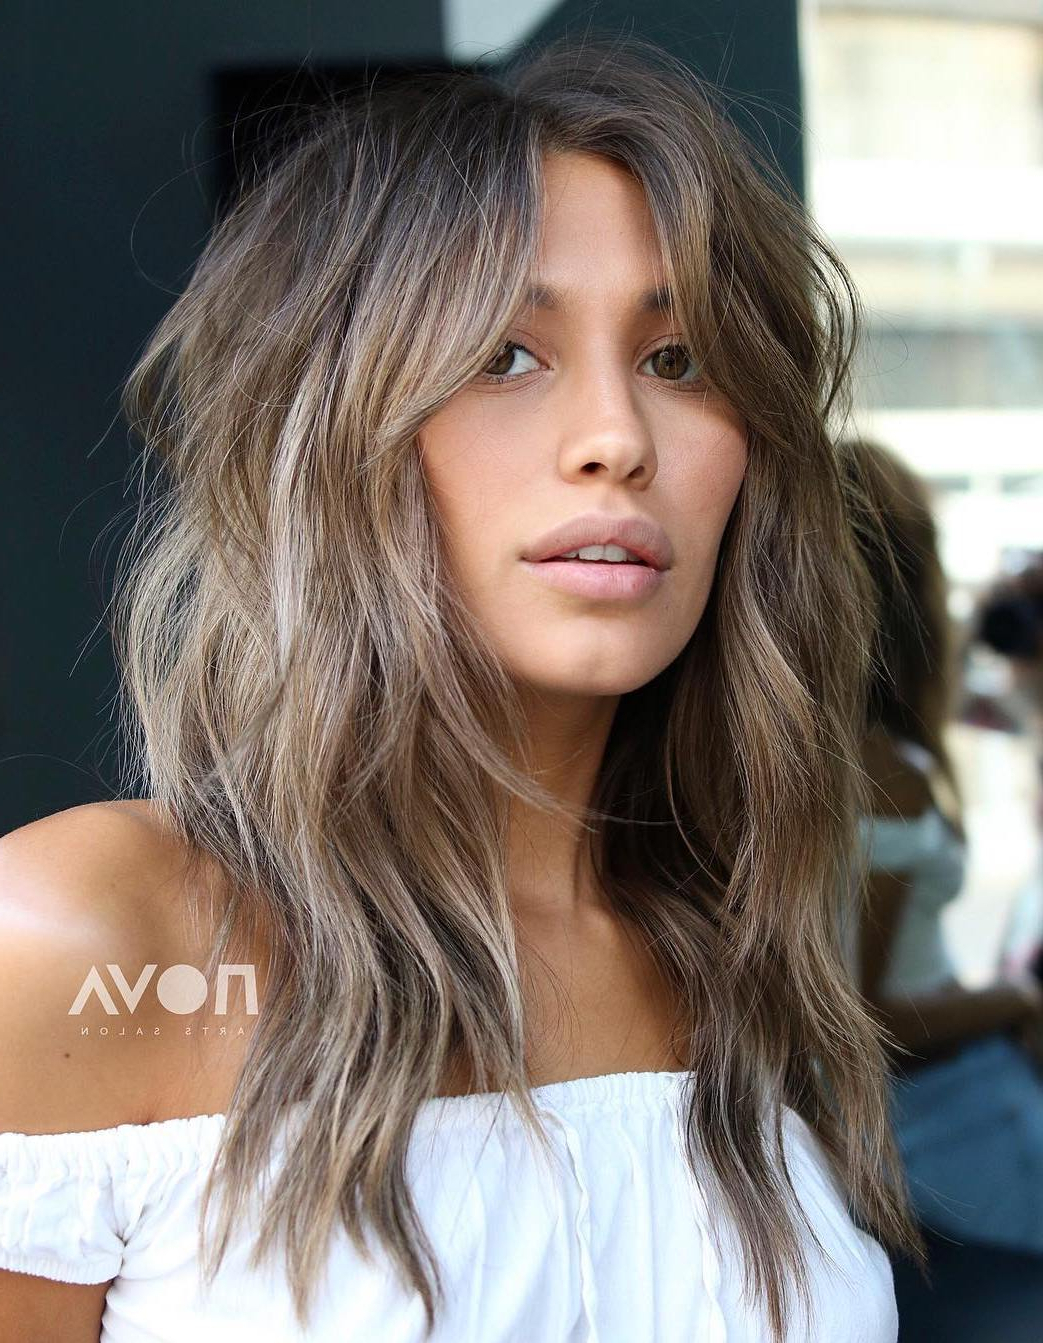 40 Modern Shag Haircuts For Women To Make A Splash Within Most Current Longer Tousled Caramel Blonde Shag Haircuts (View 3 of 20)